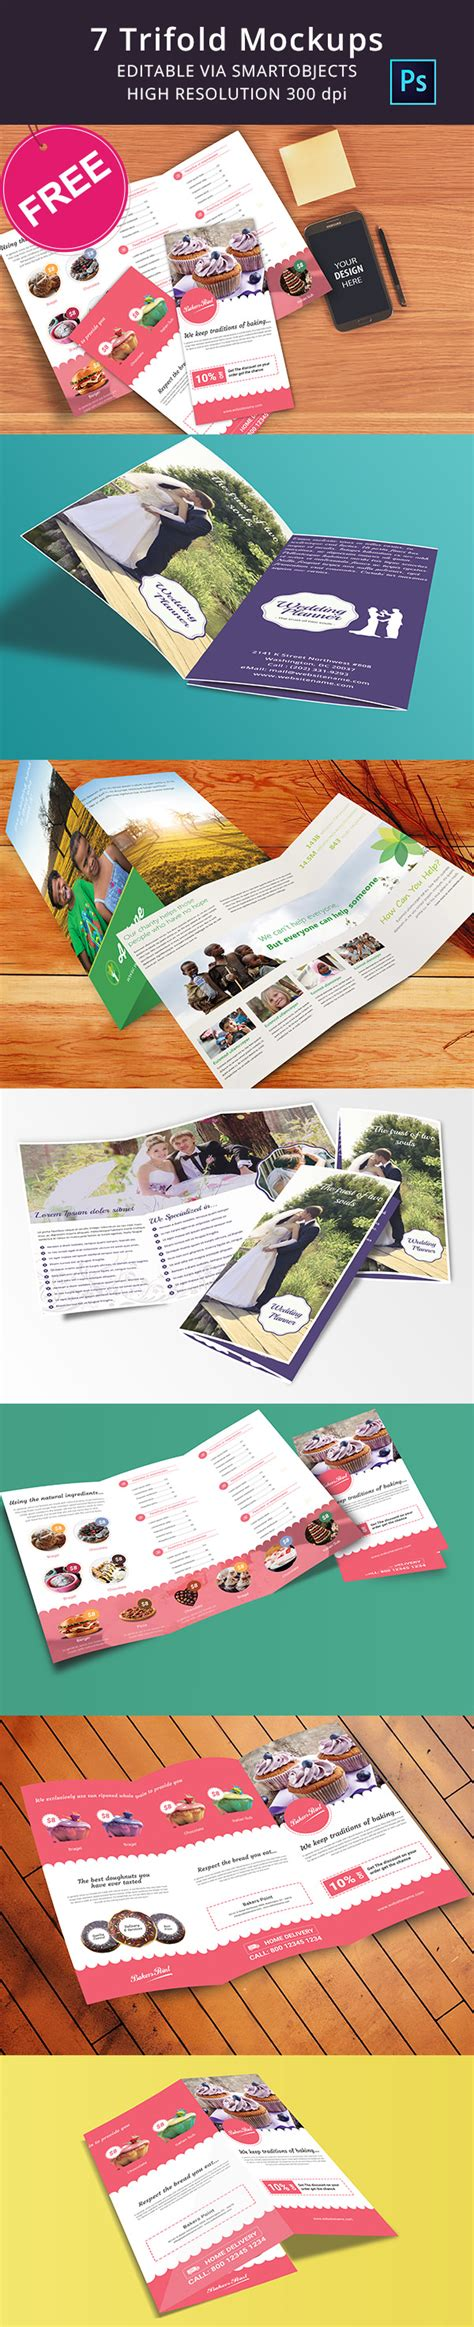 Indesign Trifold Template by 10 Printable Trifold Templates Doc Psd Pdf Eps